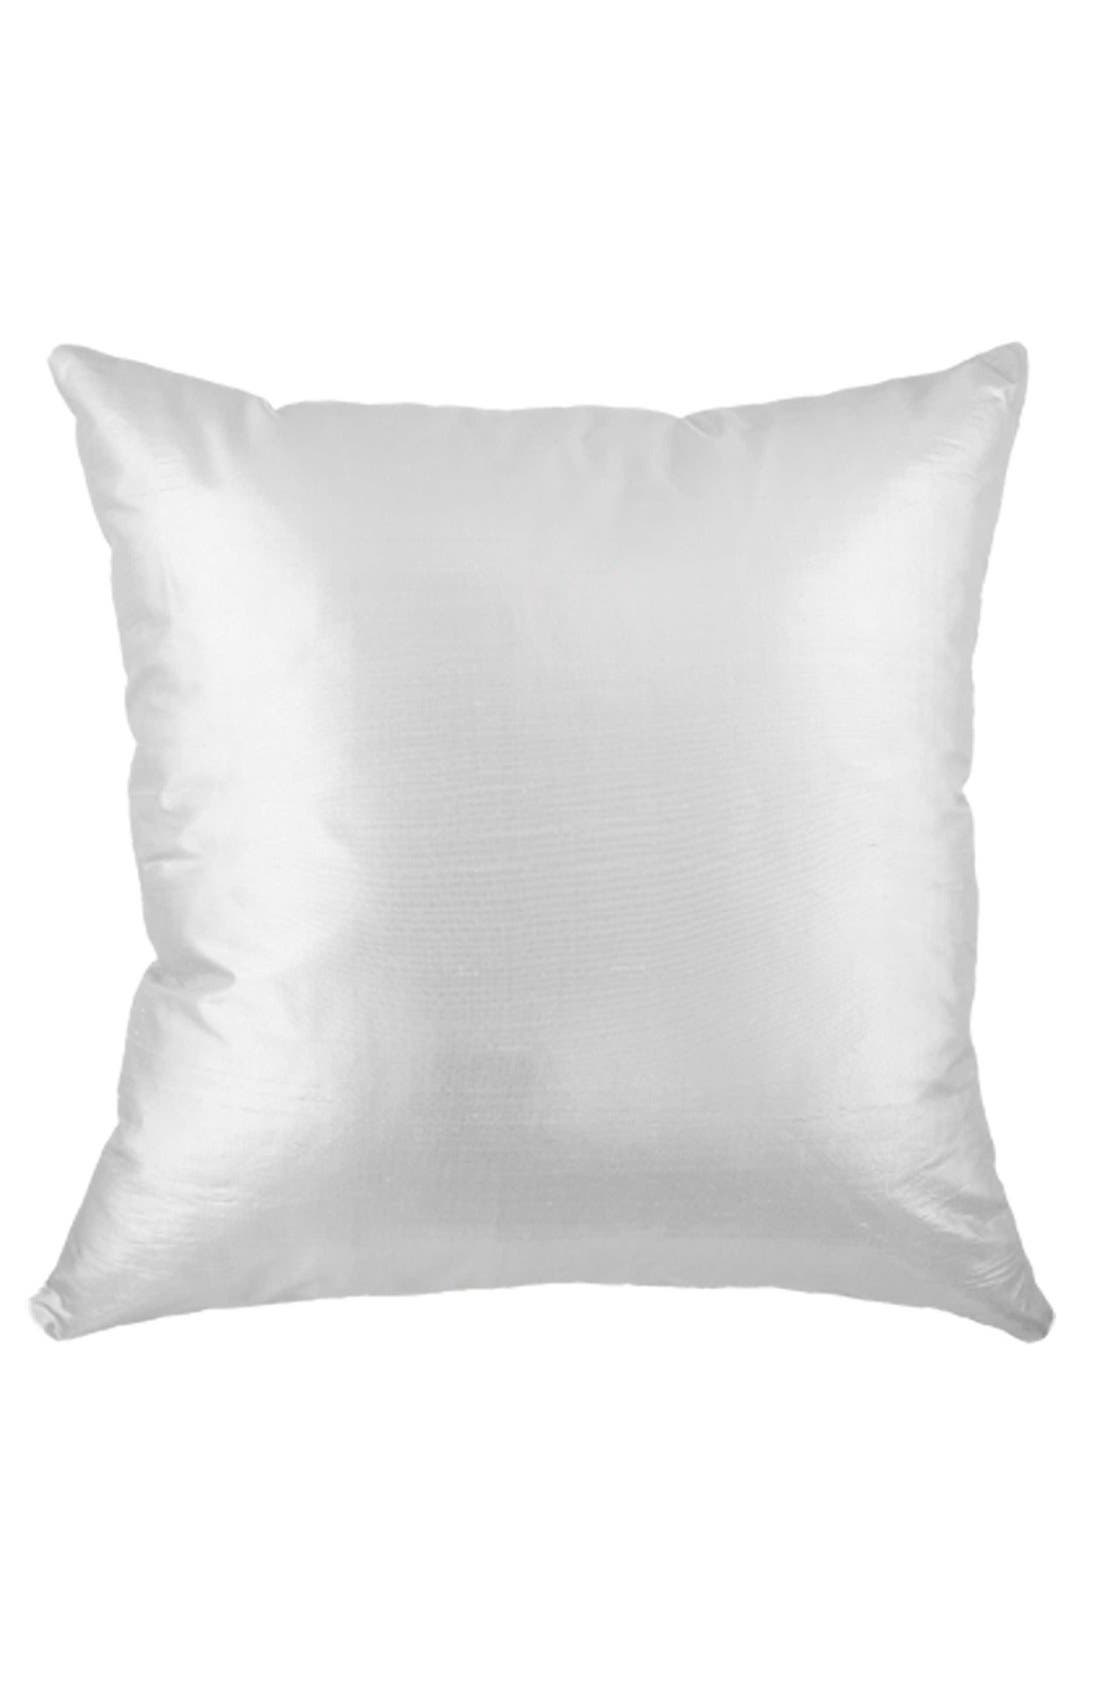 Alternate Image 1 Selected - KAS Designs 'Space' Pillow